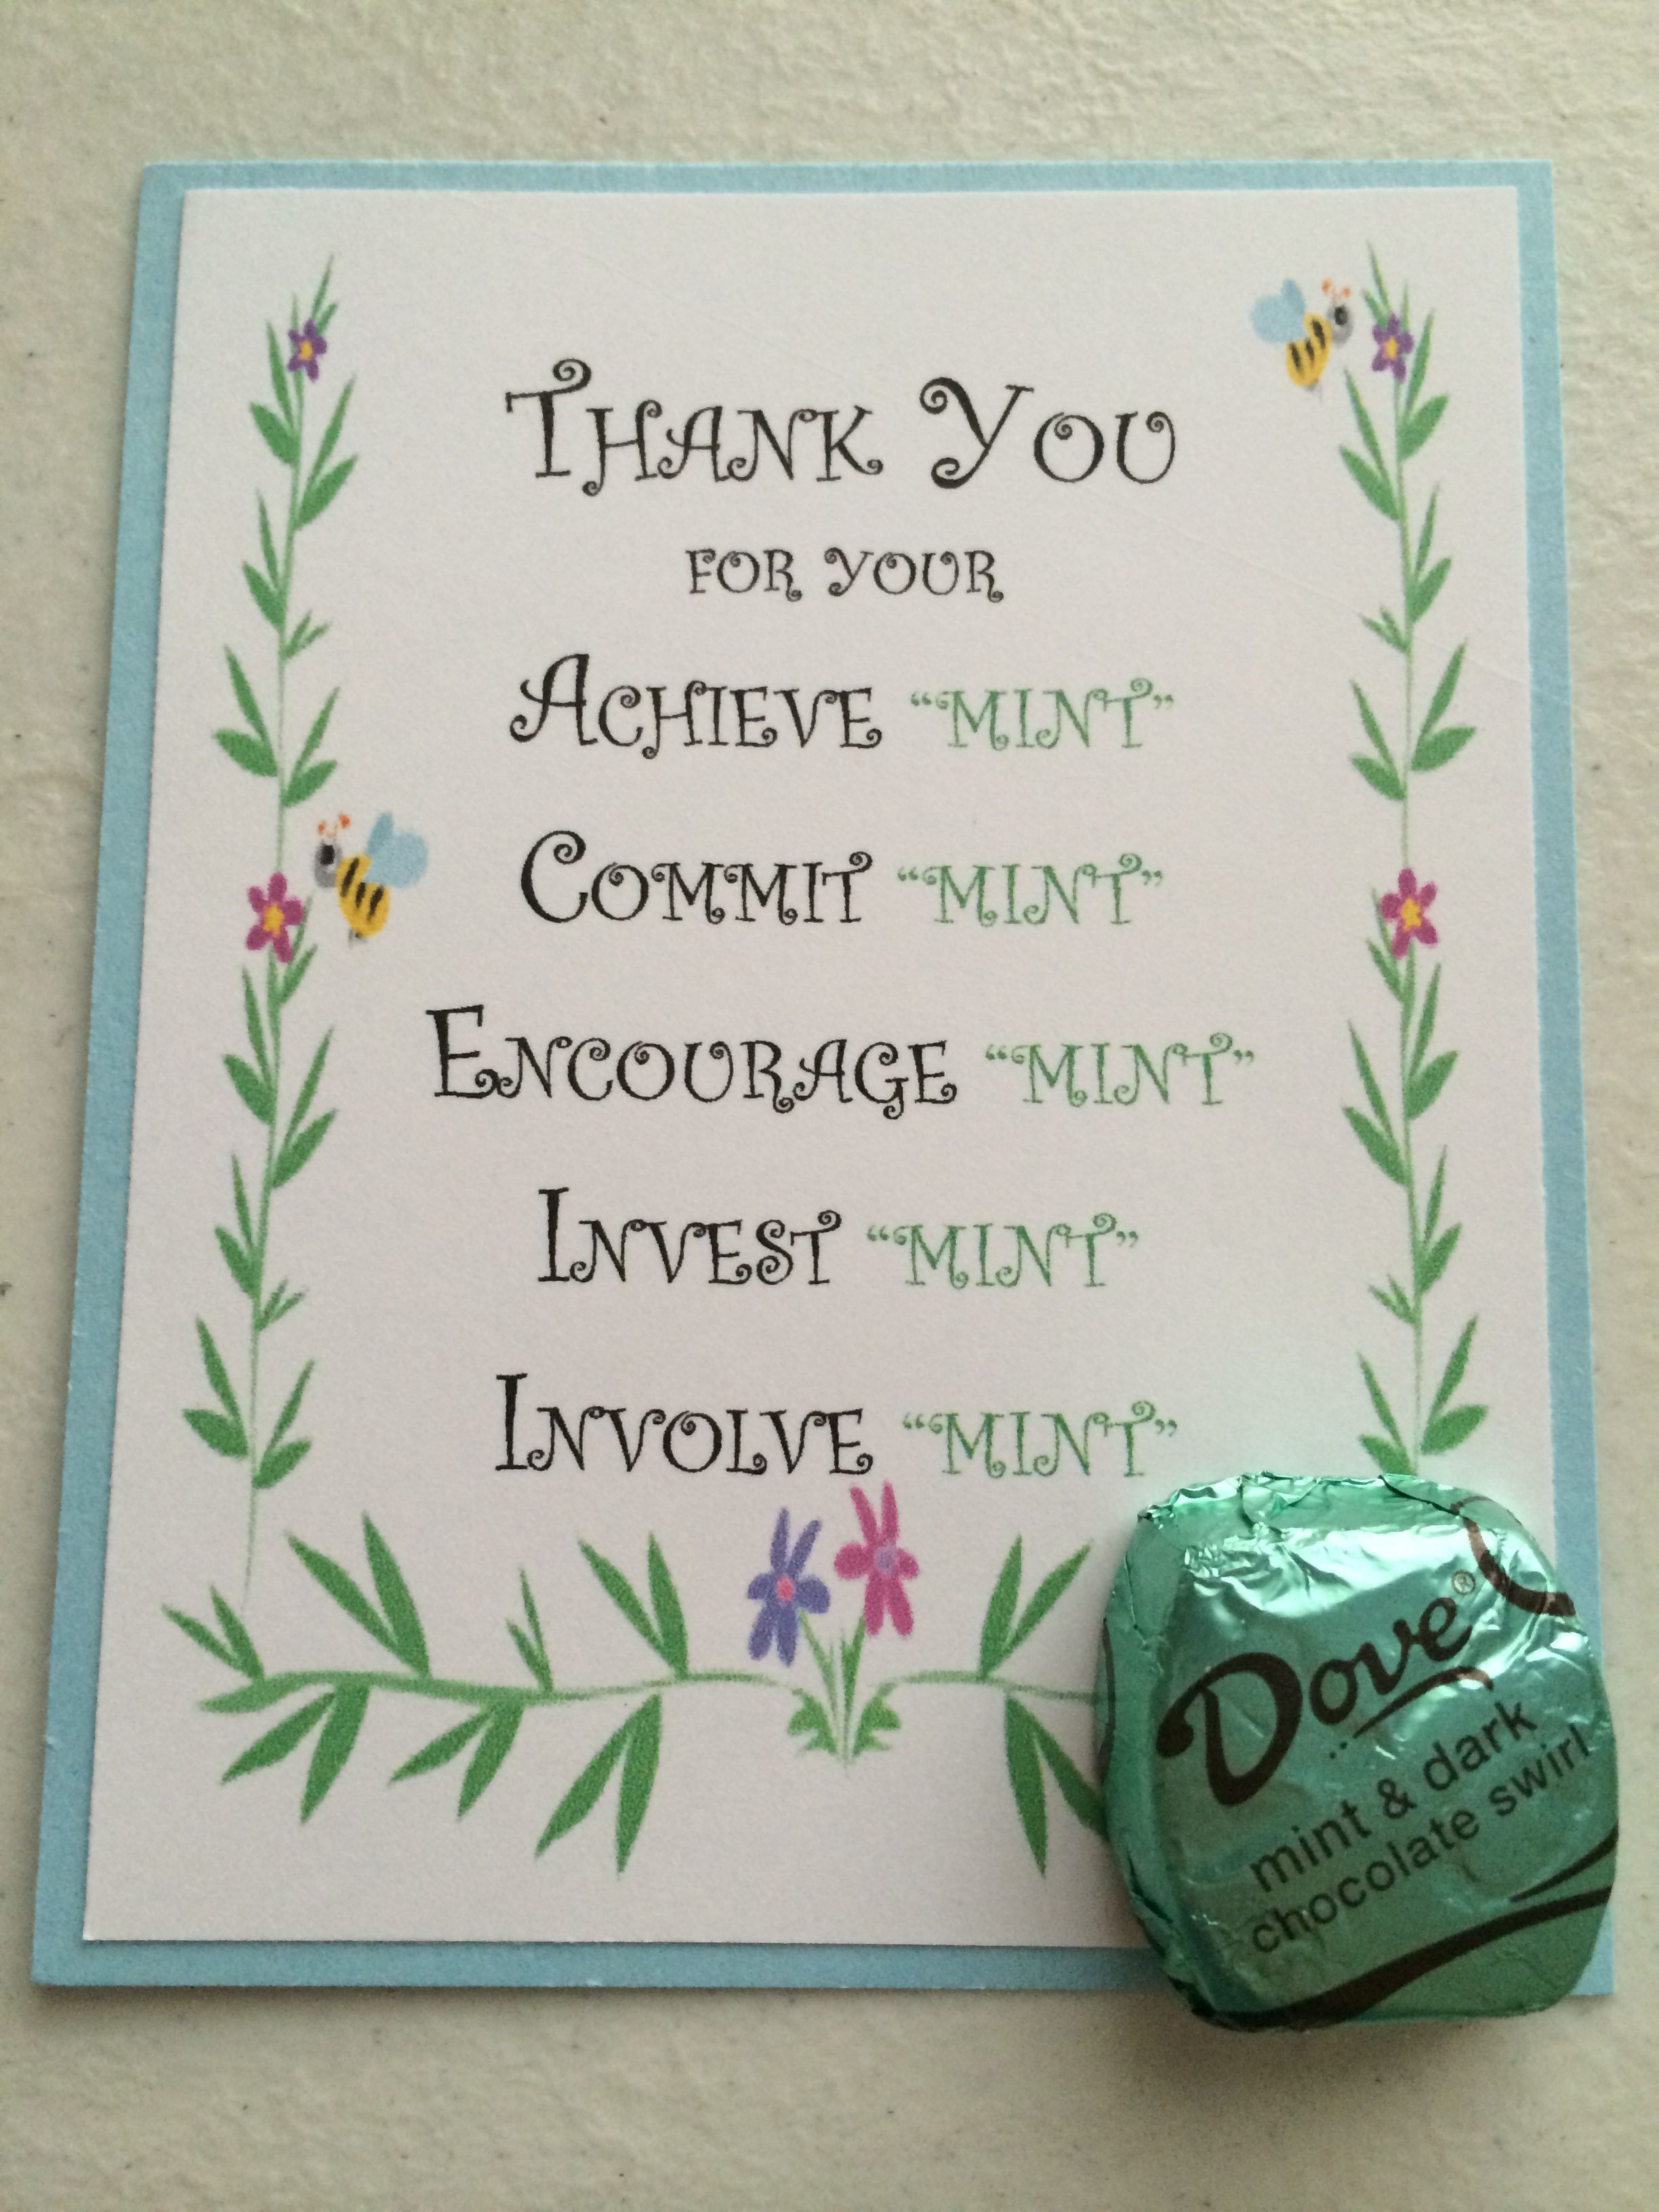 Volunteer Thank You Card | Cards | Volunteer Appreciation Gifts - Free Printable Volunteer Thank You Cards